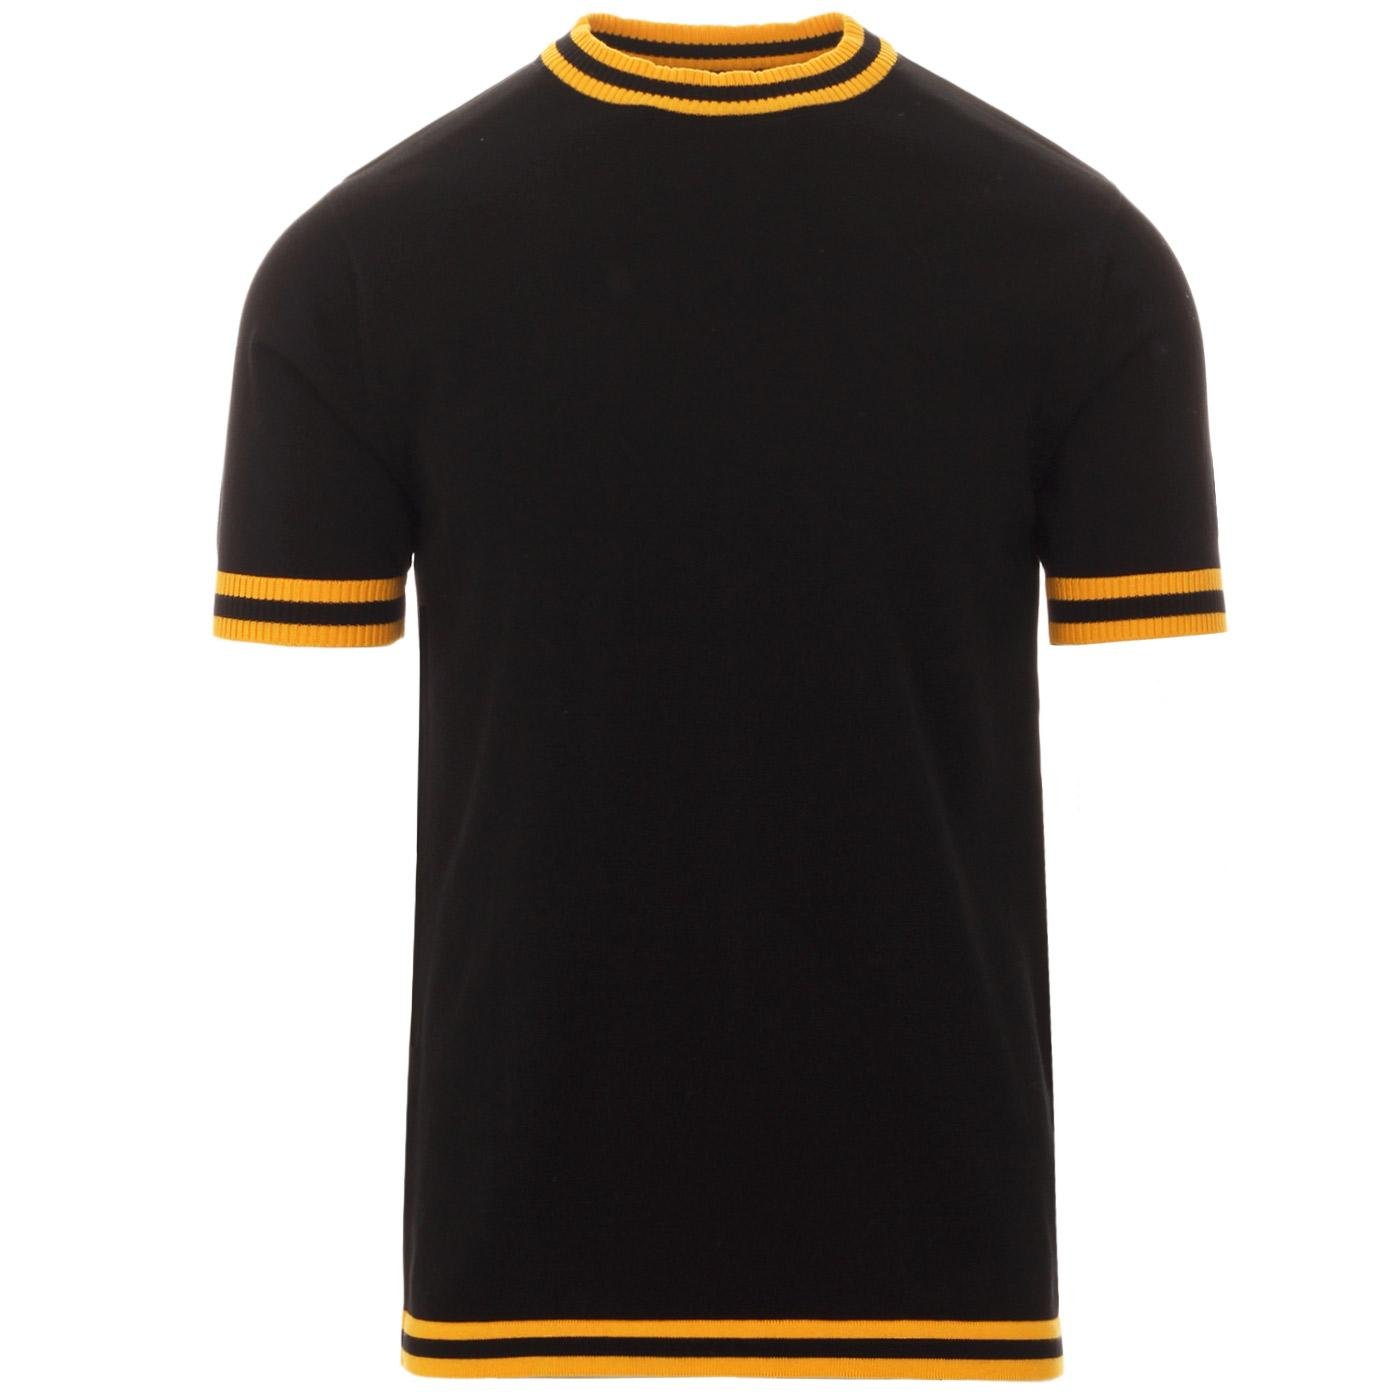 Madcap England Moon 60s Mod Tipped Knitted Tee in Black with Citrus